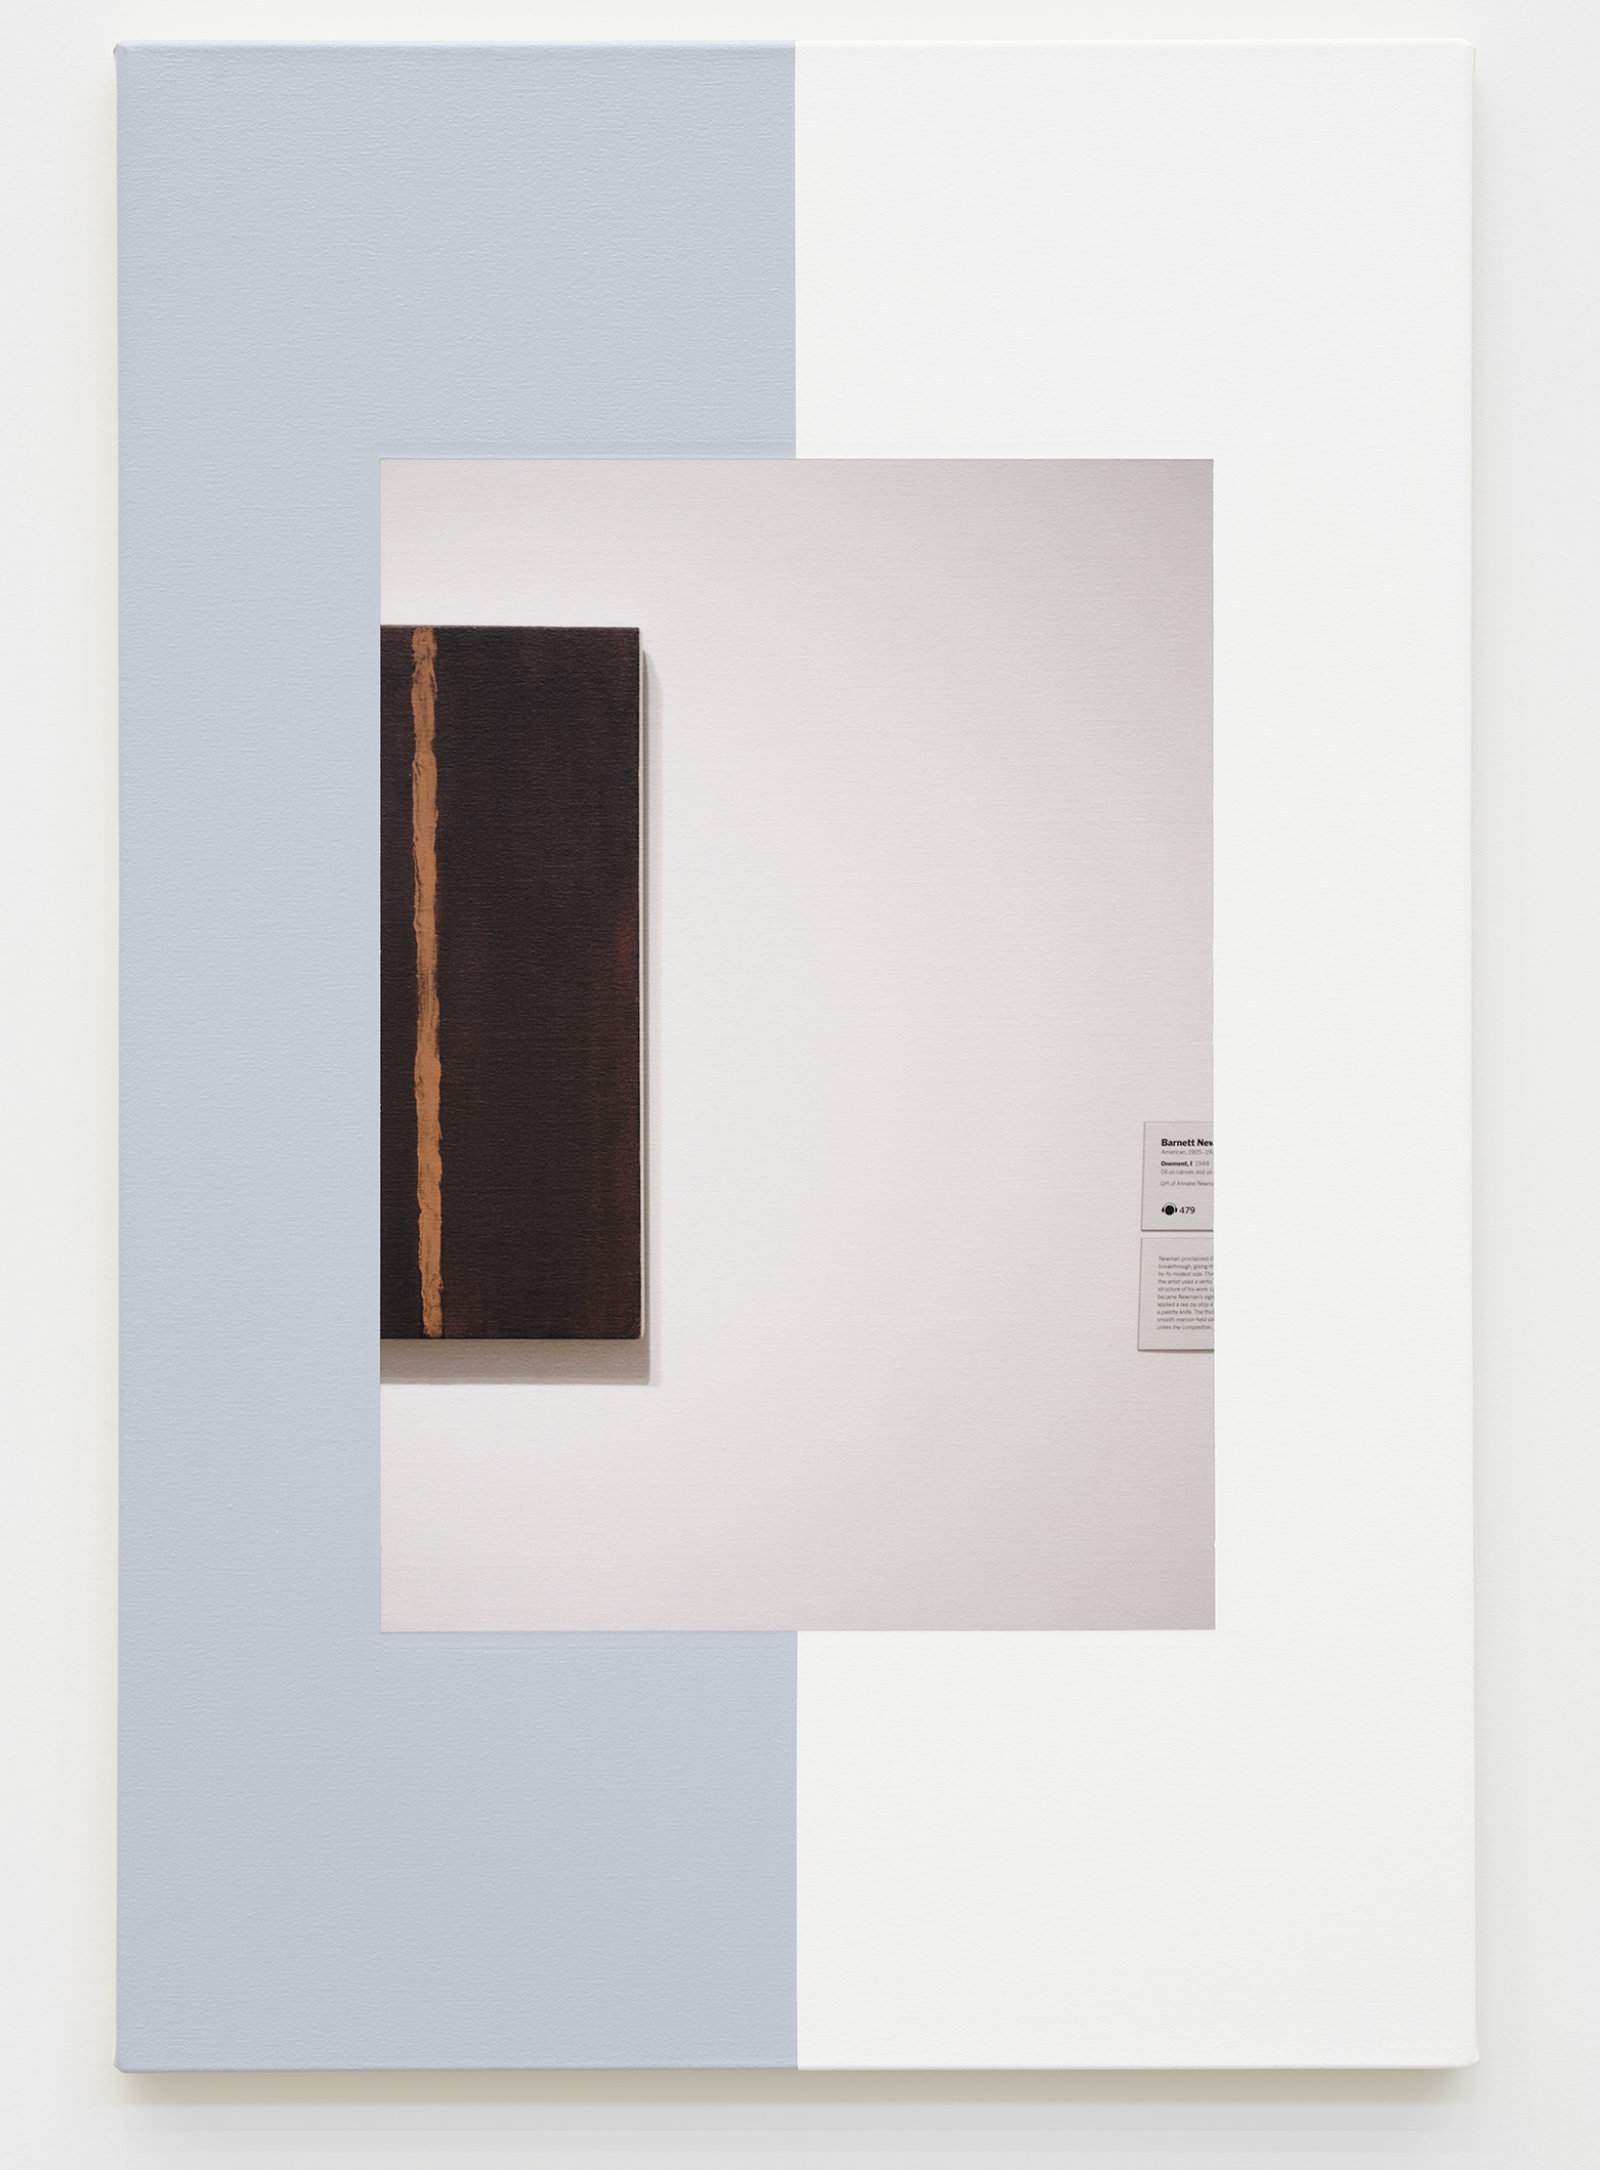 Ian Wallace, Abstract Composition (with Onement), 2011, photolaminate with acrylic on canvas, 36 x 24 in. (91 x 61 cm) by Ian Wallace